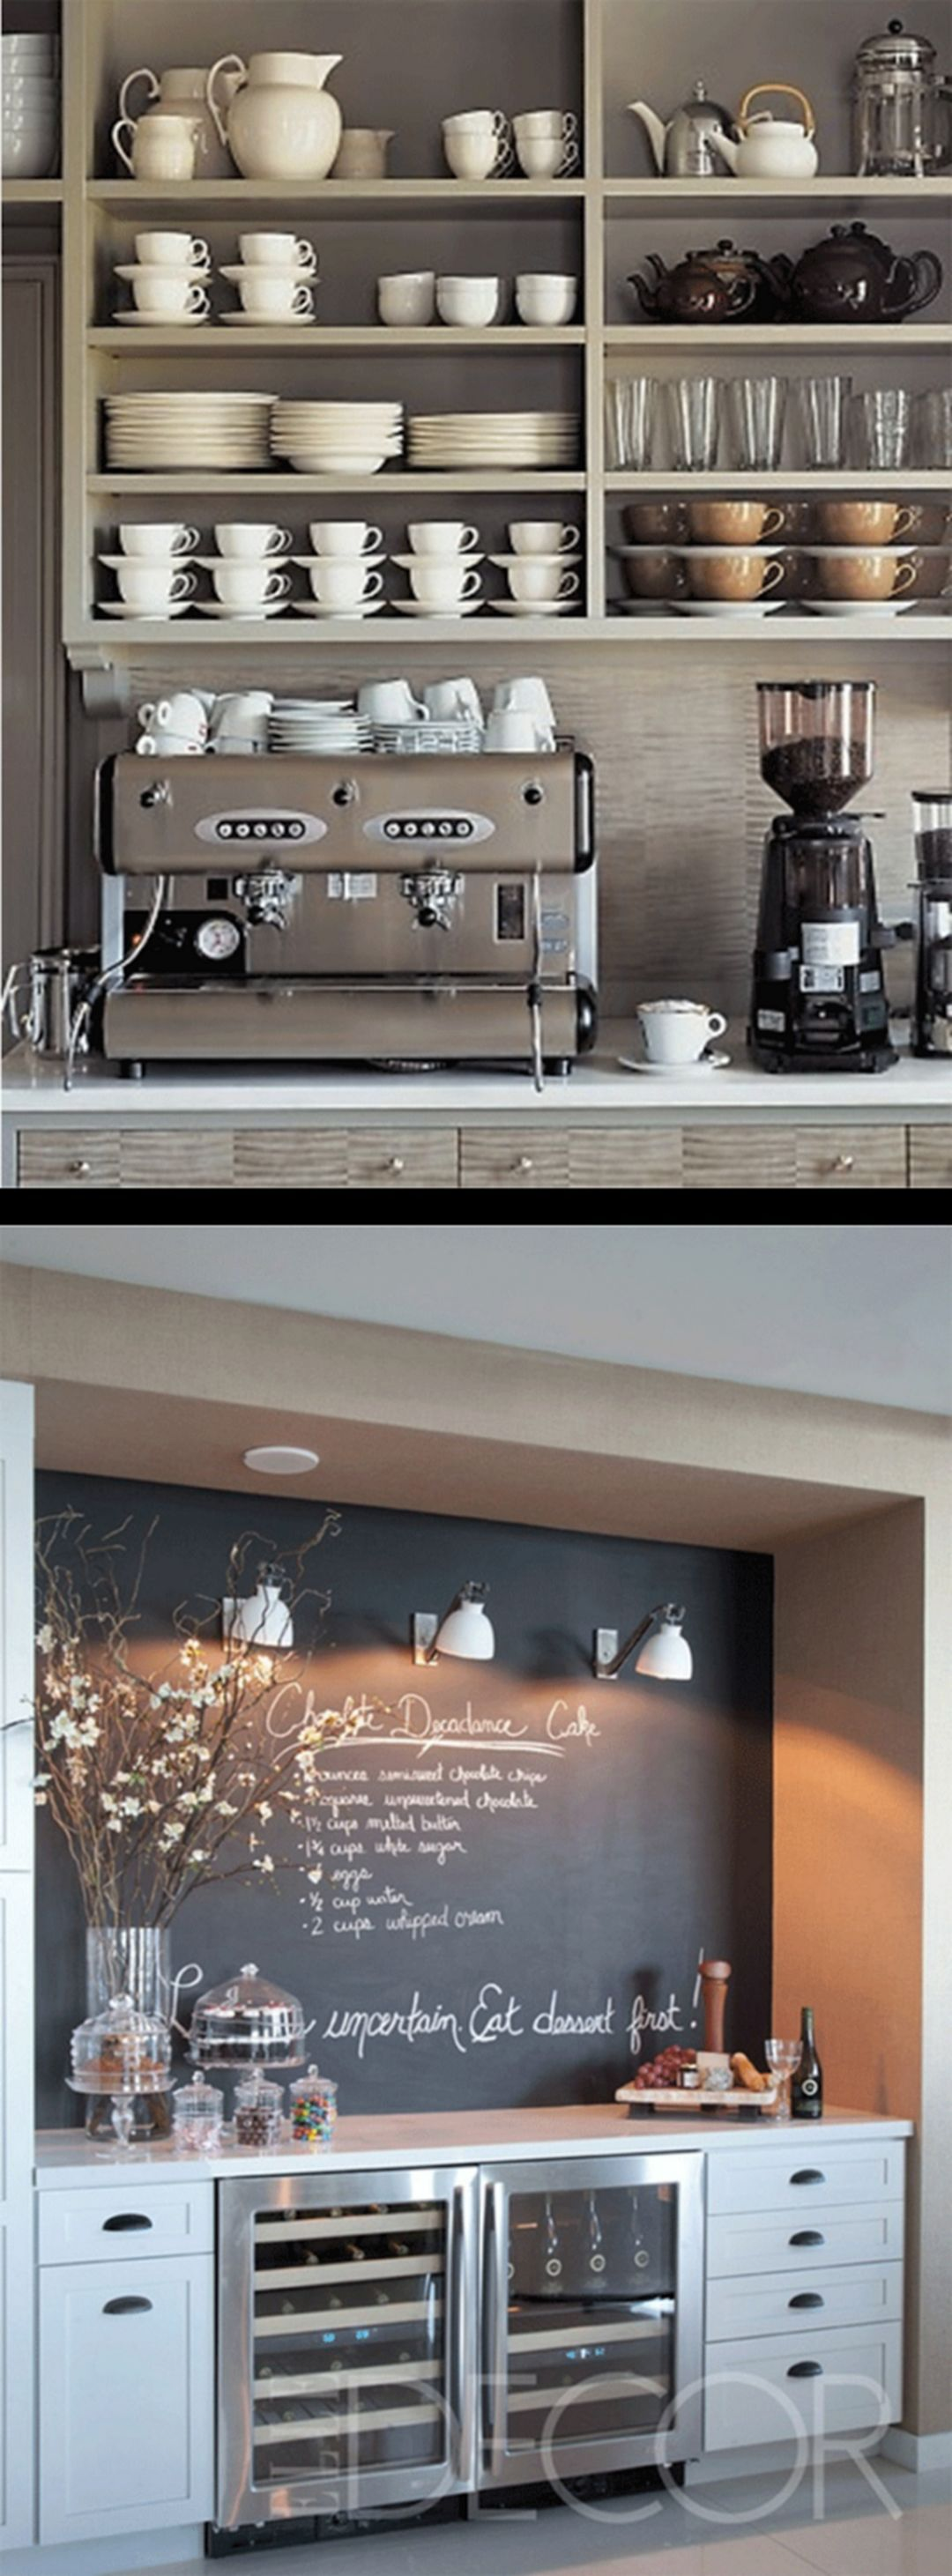 home coffee bar design ideas. 75  Elegant Home Coffee Bar Design And Decor Ideas You Must Have In Your House